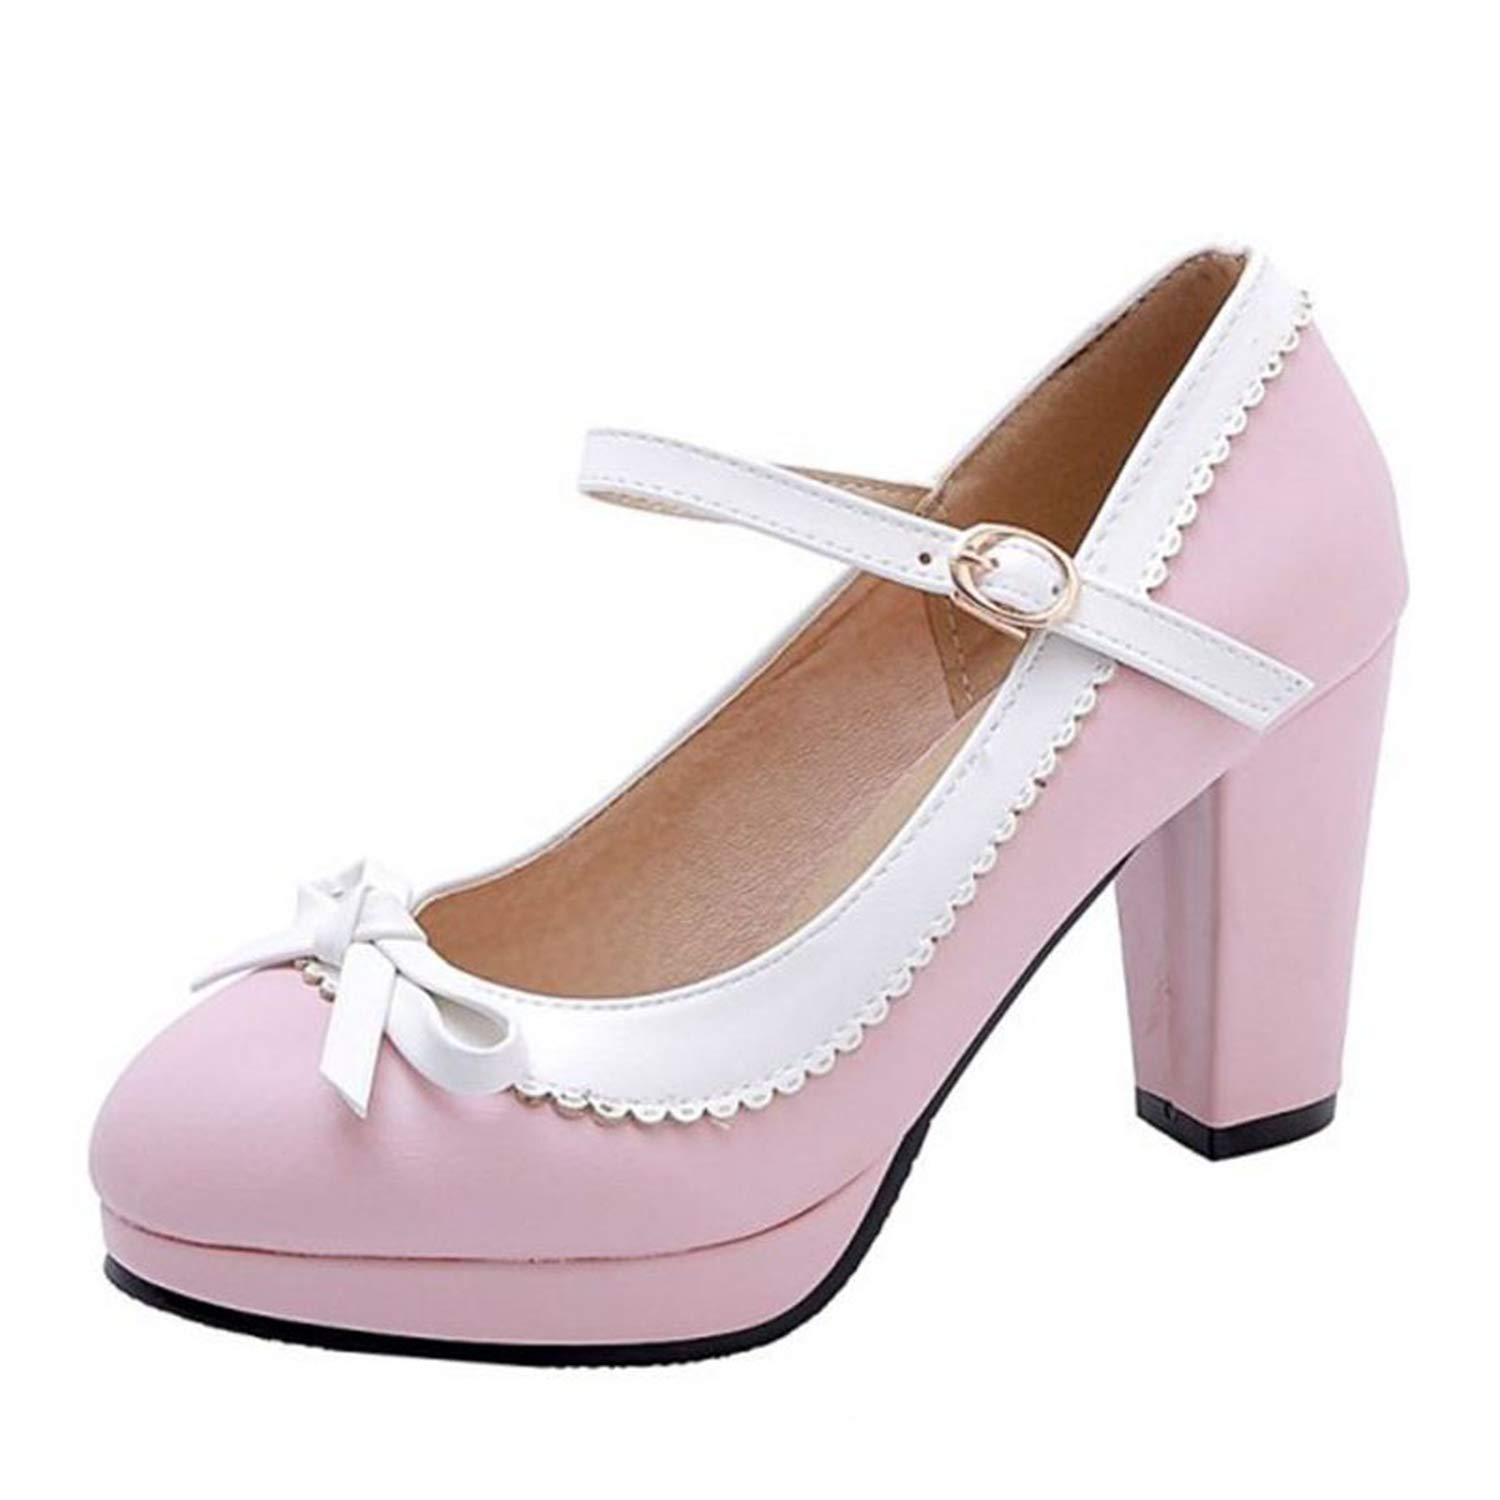 mamamoo Women New Sweet Spring Pumps Bowknot 4 Colors Party Wedding Daily High Heel Shoes Women,Pink,9